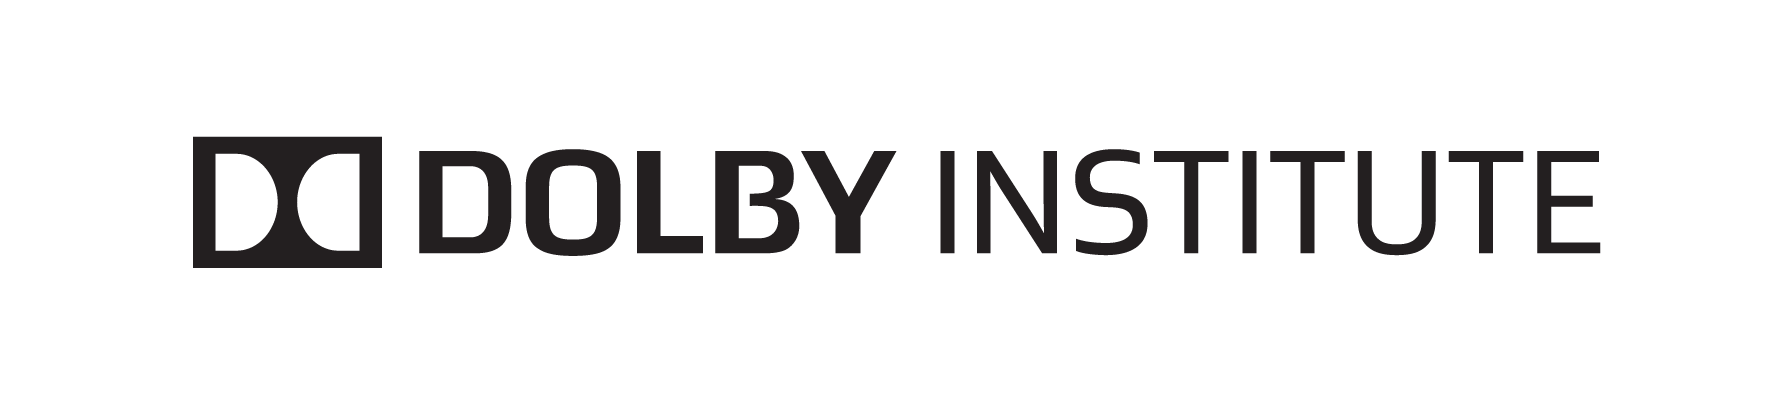 Dolby Institute Horizontal Black PNG